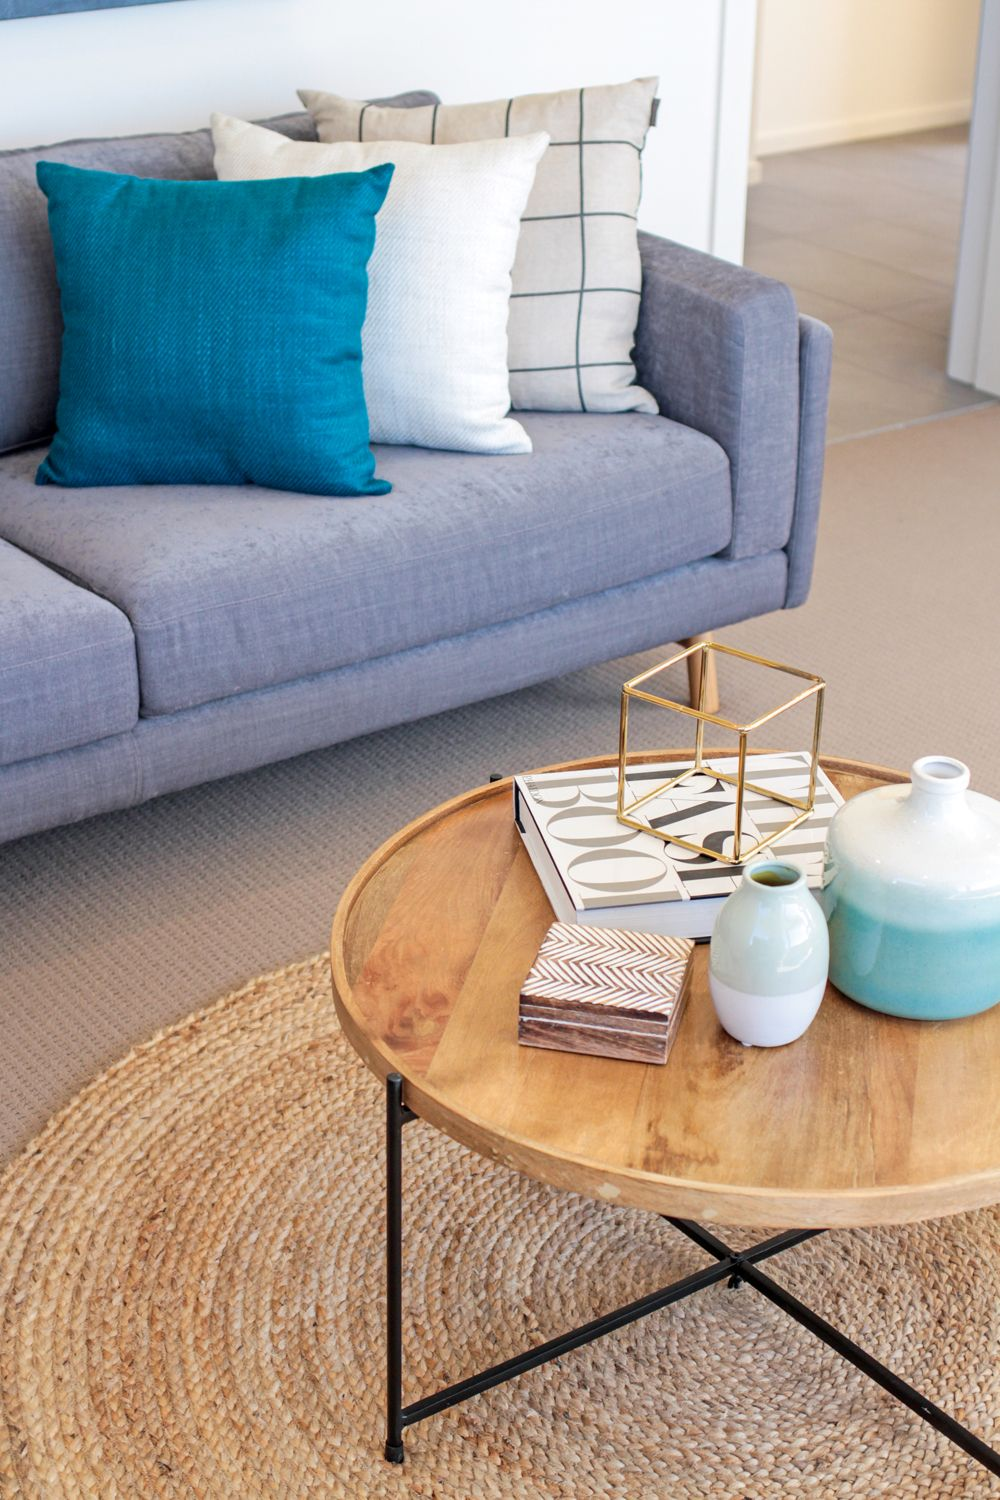 Coffee Table Styling Grey Sofa Scatter Cushions Round Jute Rug Round Table Coffee Table Jute Round Rug Round Glass Coffee Table [ 1500 x 1000 Pixel ]